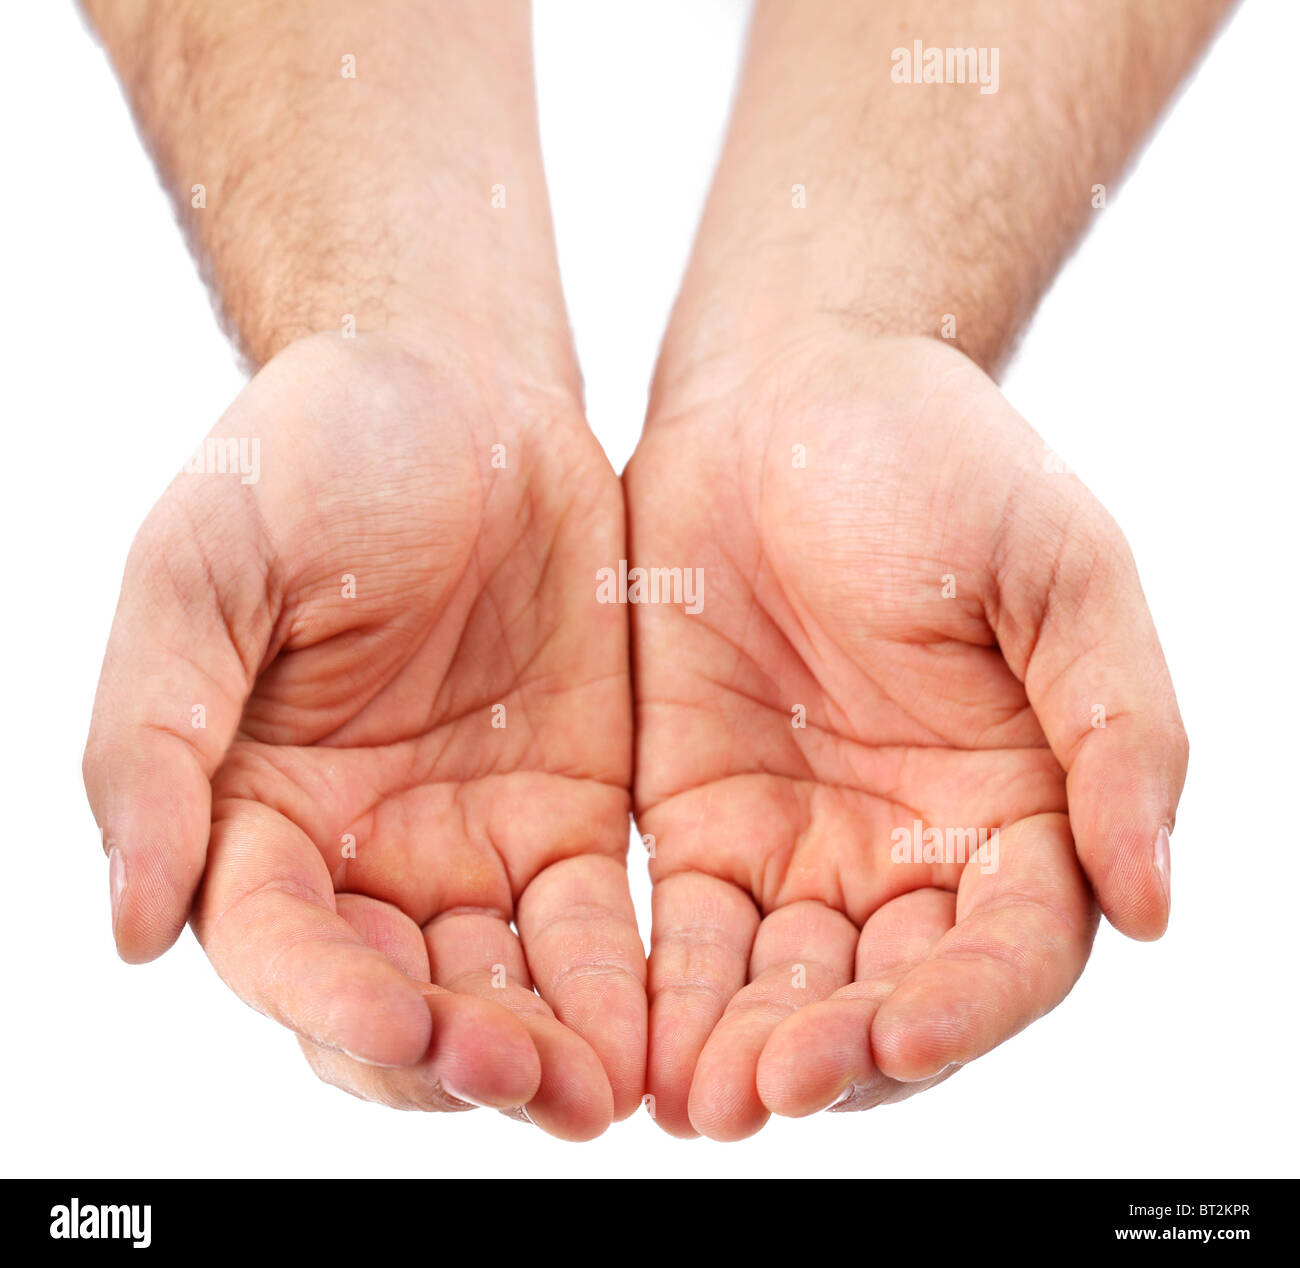 Empty palms up isolated on a white background. - Stock Image